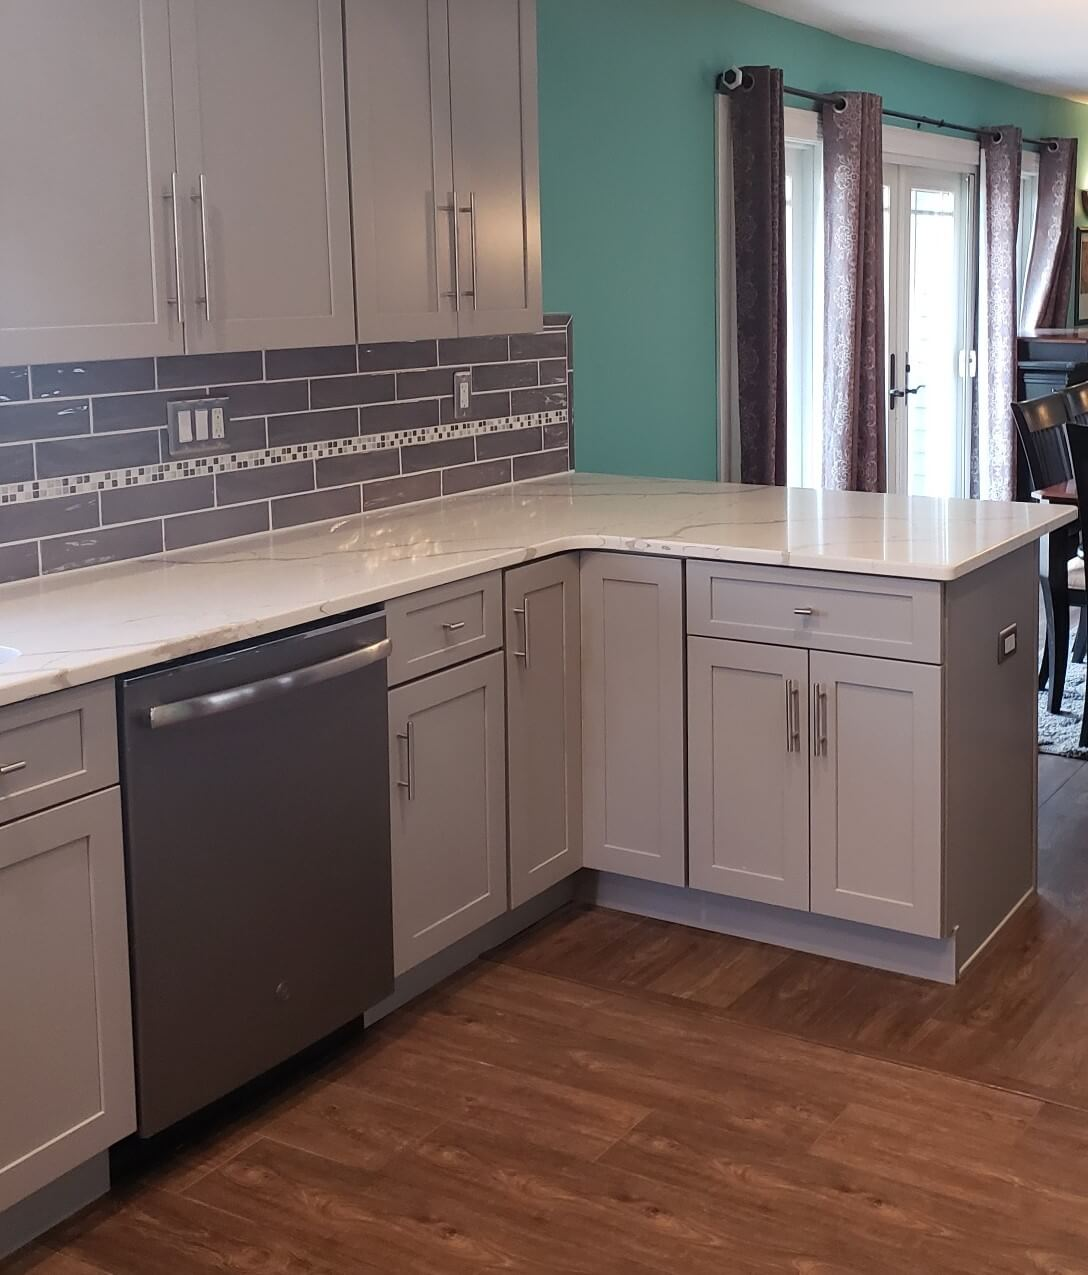 CMI Cabinets and Countertops:  Your Custom Kitchen Cabinet Maker in  Levittown